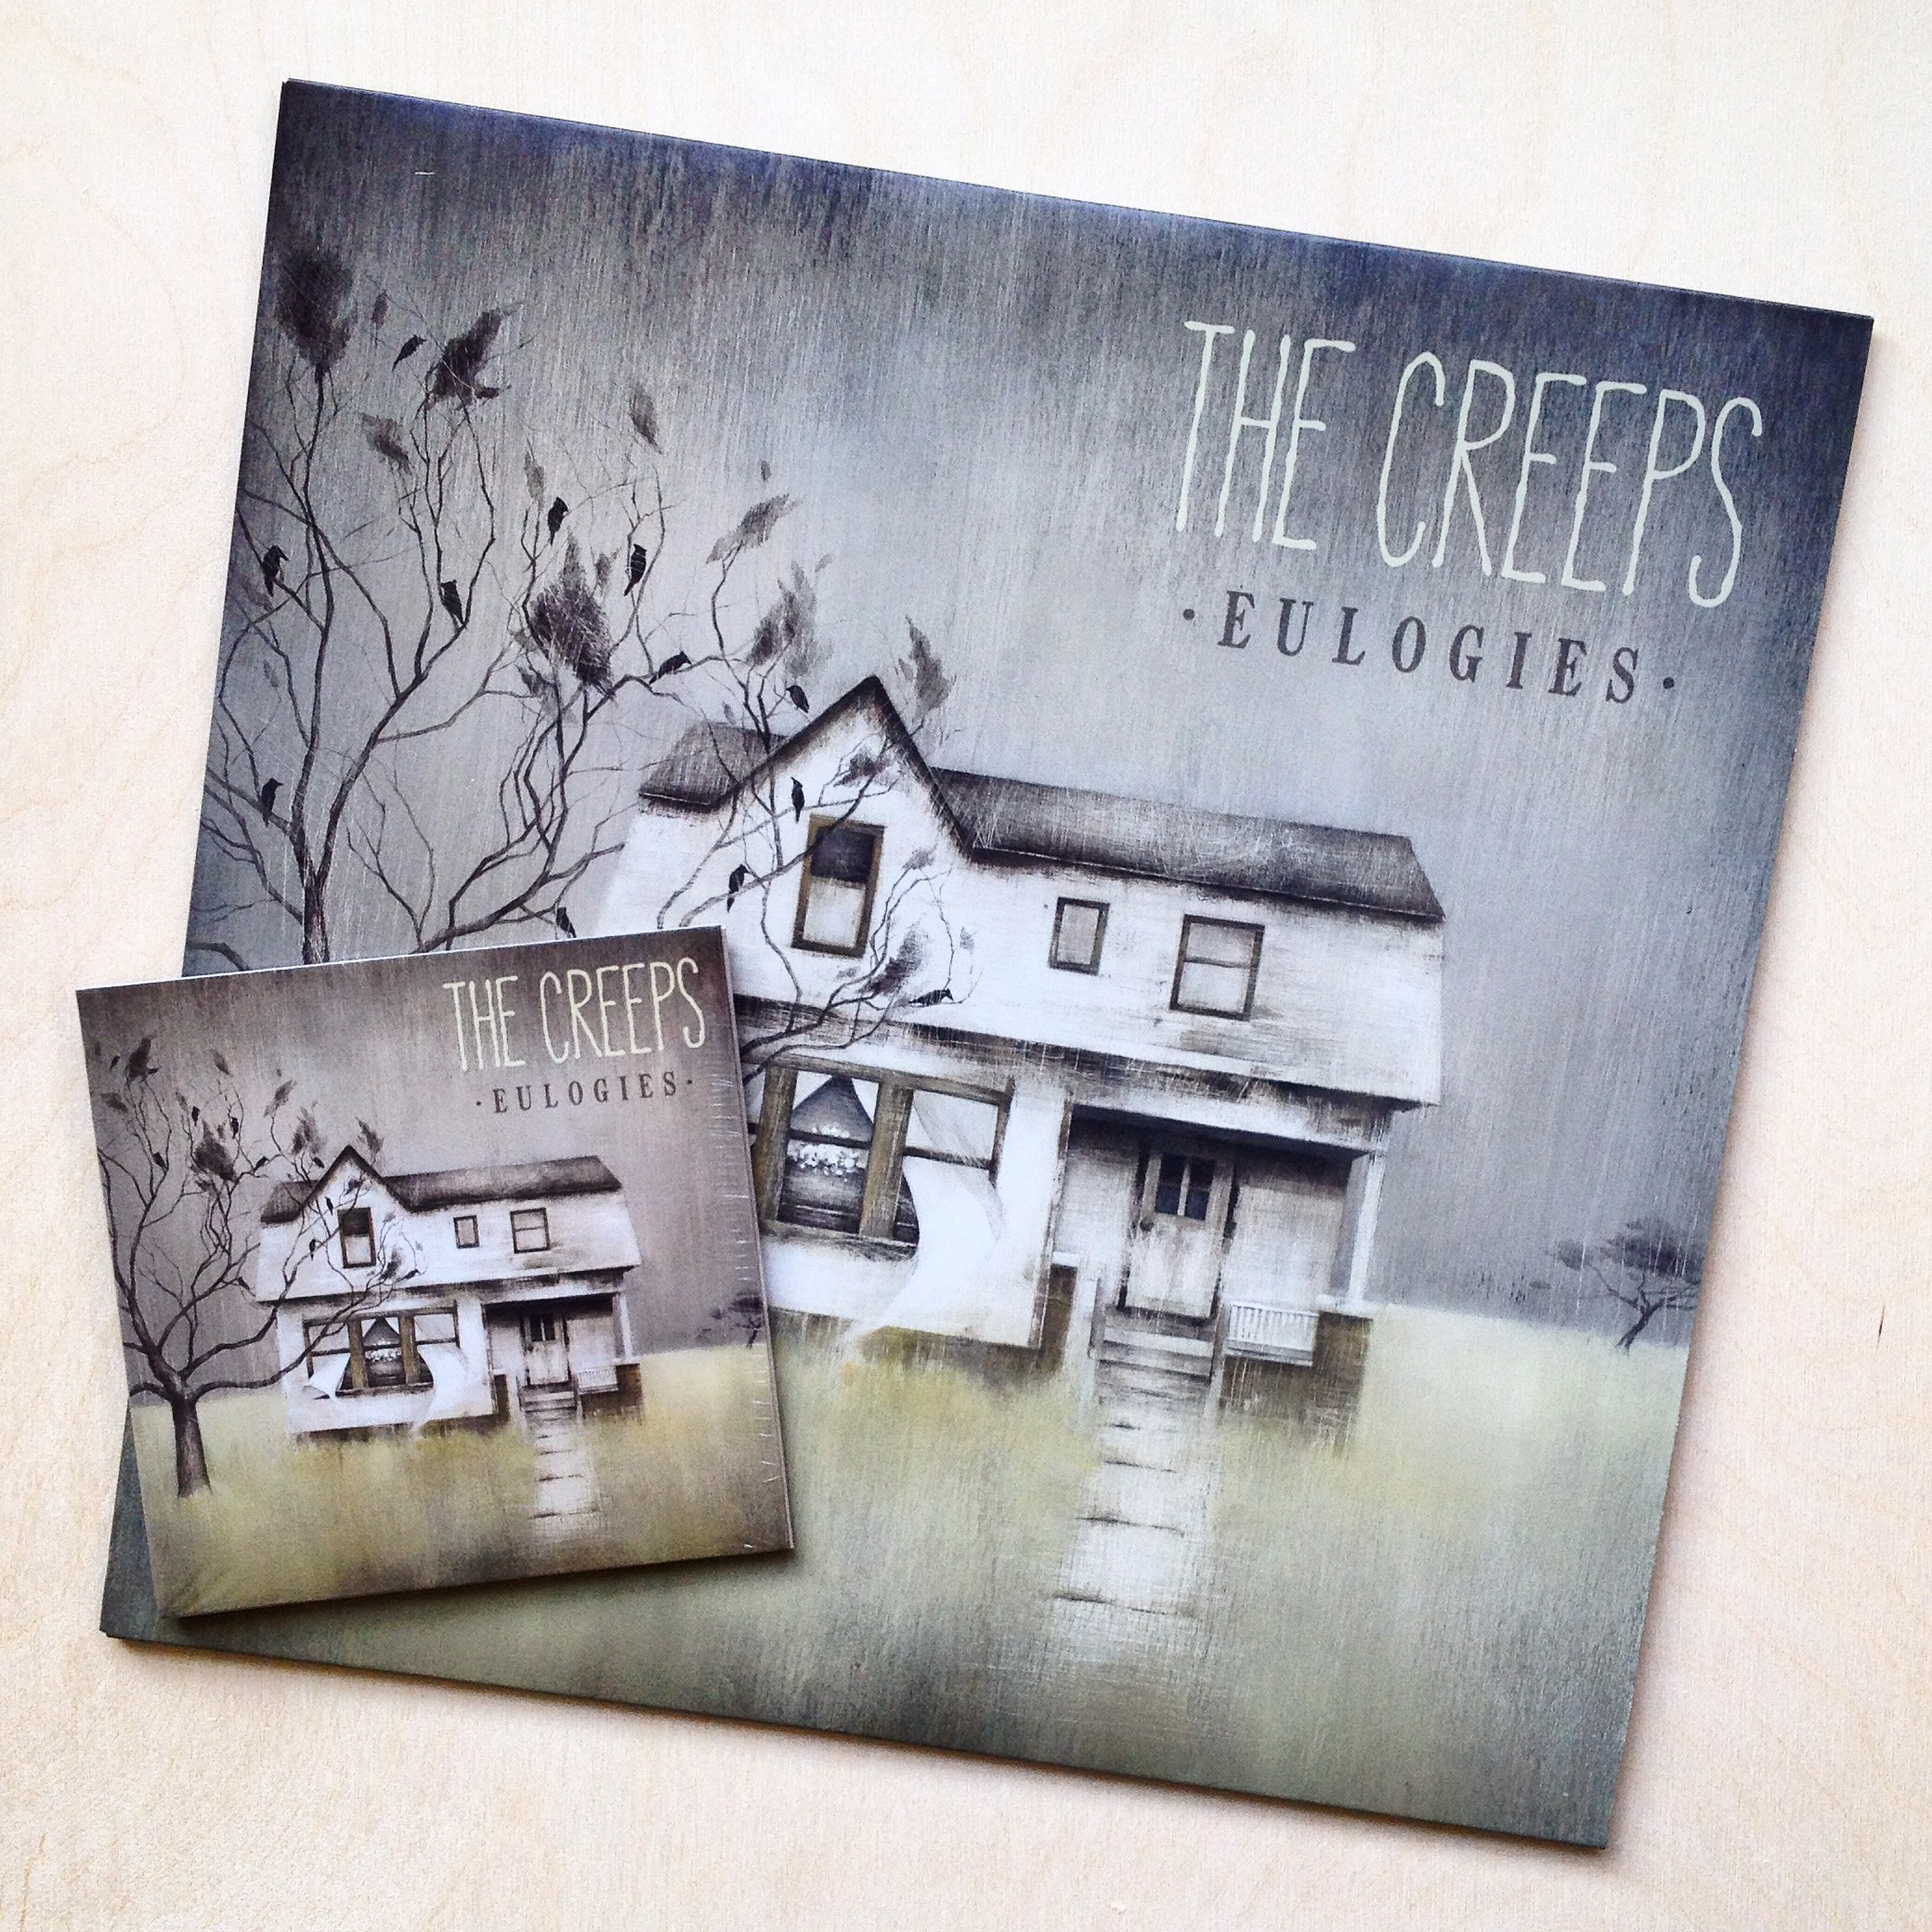 The Creeps: Eulogies, Album Art